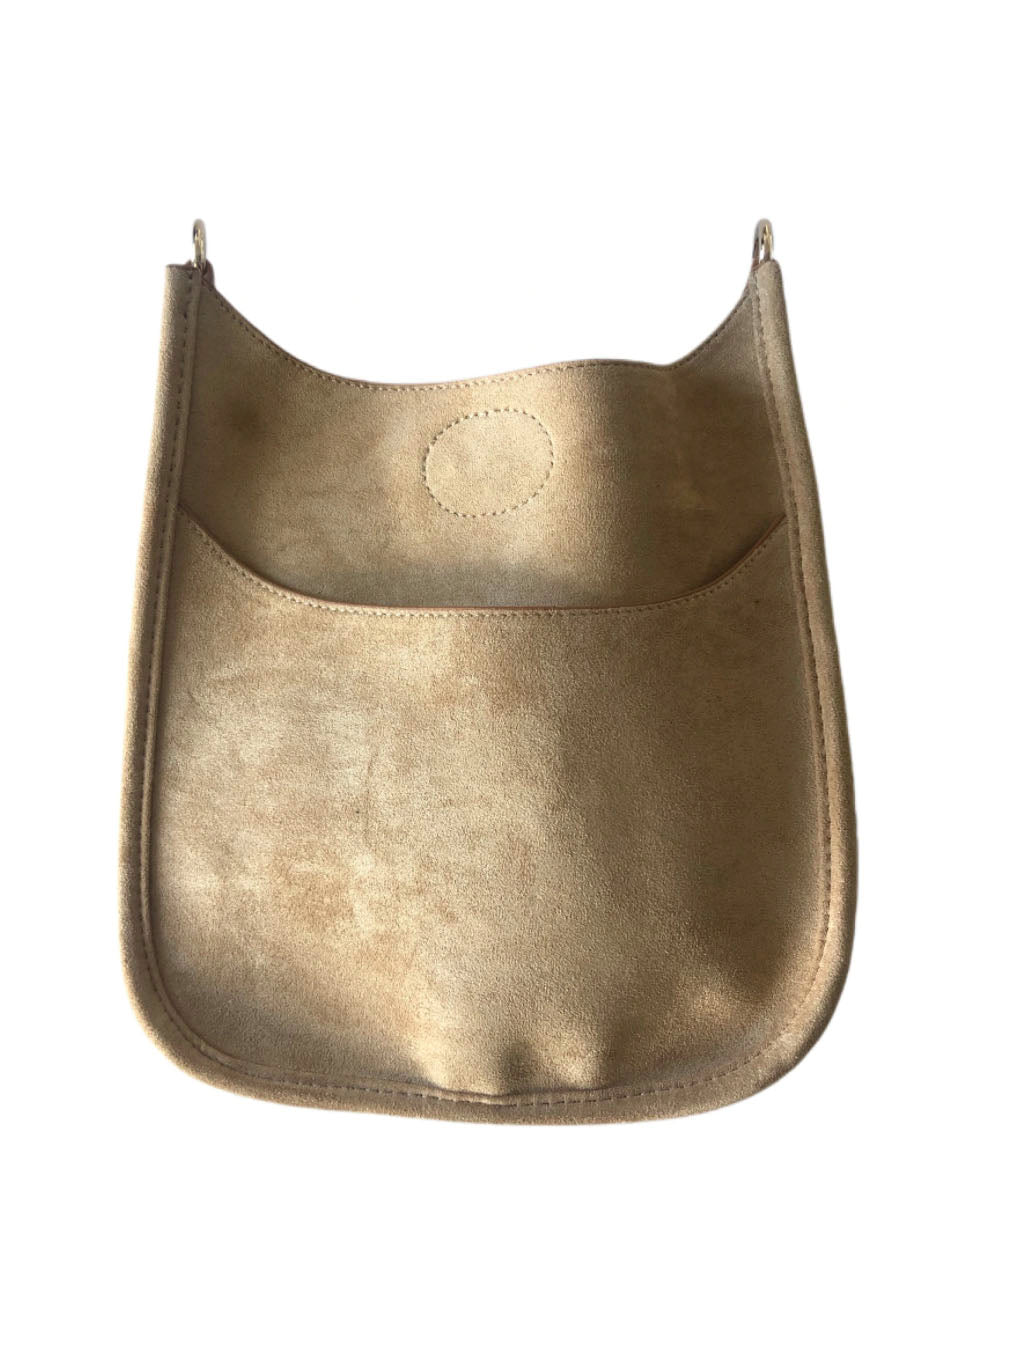 Ahdorned Mini Vegan Suede Messenger Bag in Camel--No Strap!